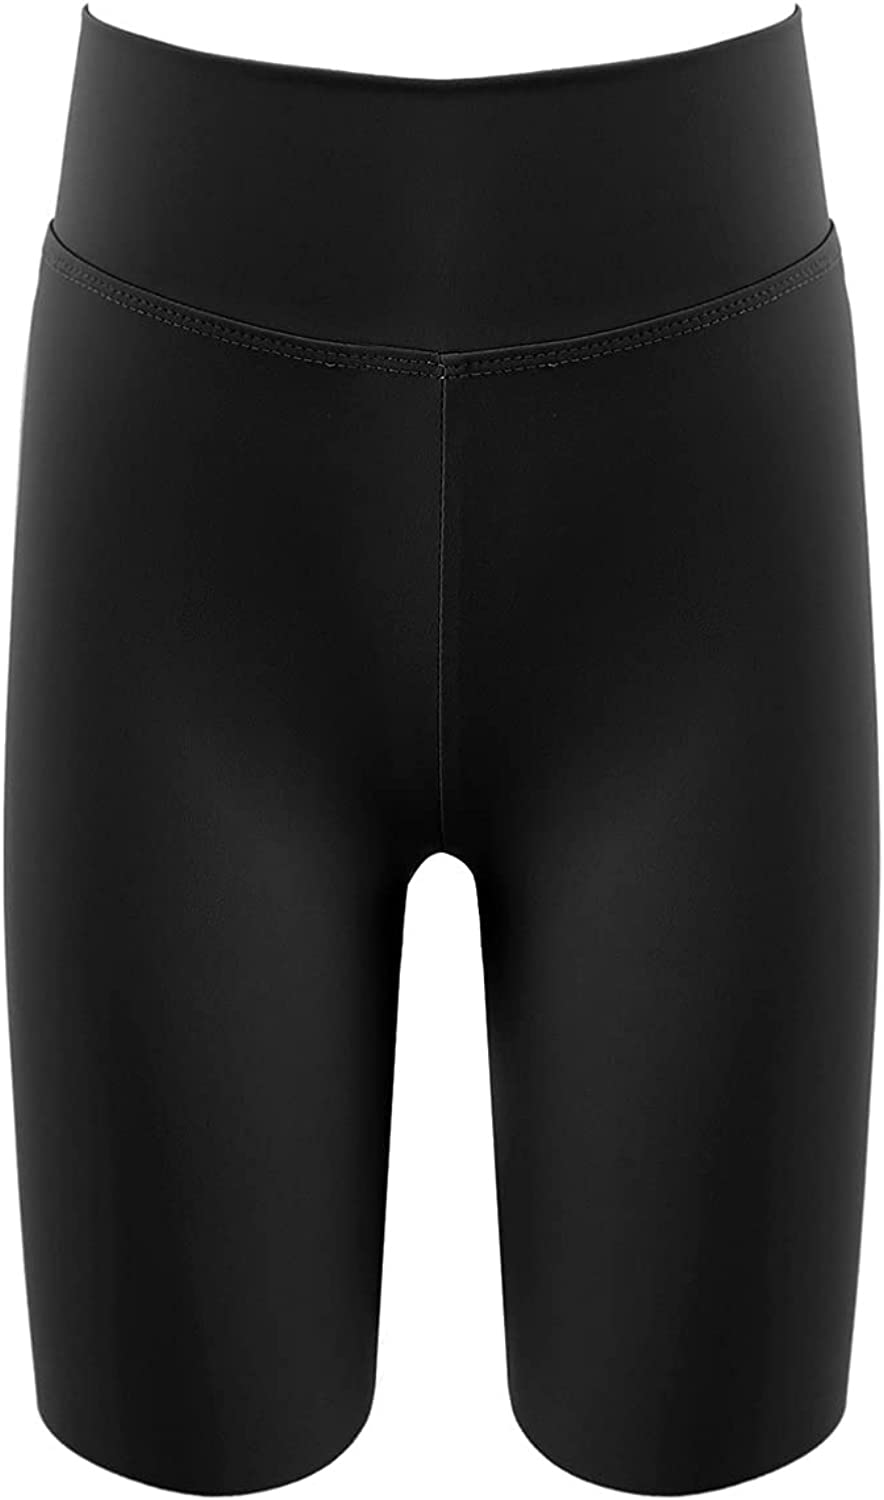 dPois Girls Pure Color High Waist Stretchy Five Cents Shorts Athletic Fitness Workout Sport Stage Performance Hot Pants